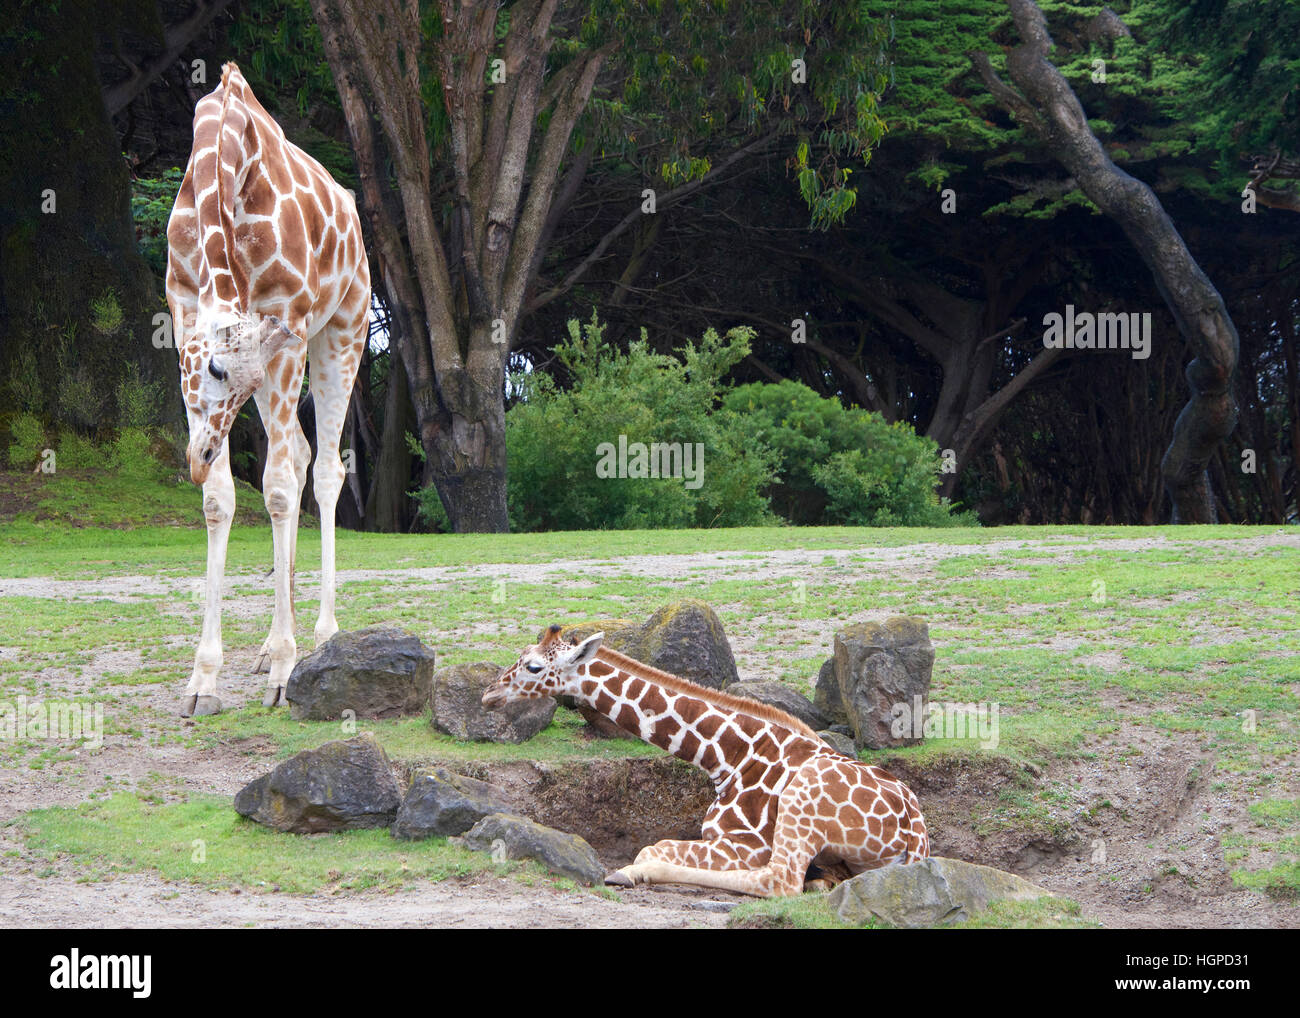 mother giraffe bending down to look at baby laying on the ground, encouraging youngster to get up, green grass, - Stock Image